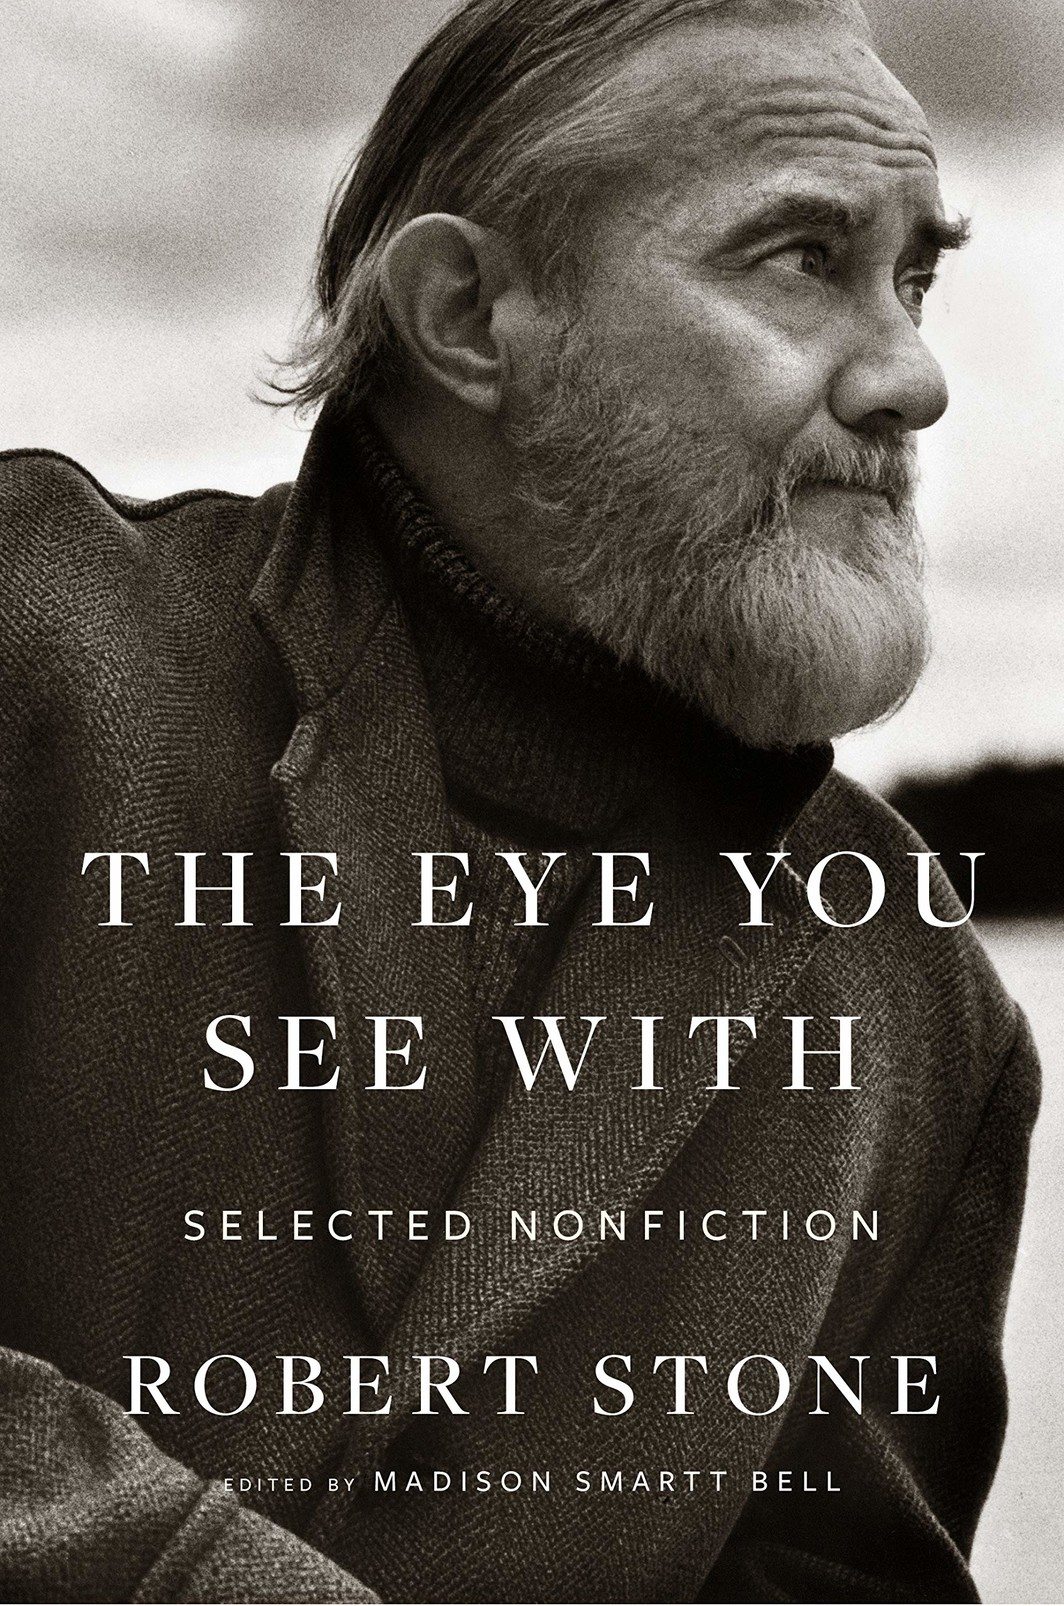 The cover of THE EYE YOU SEE WITH: SELECTED NONFICTION